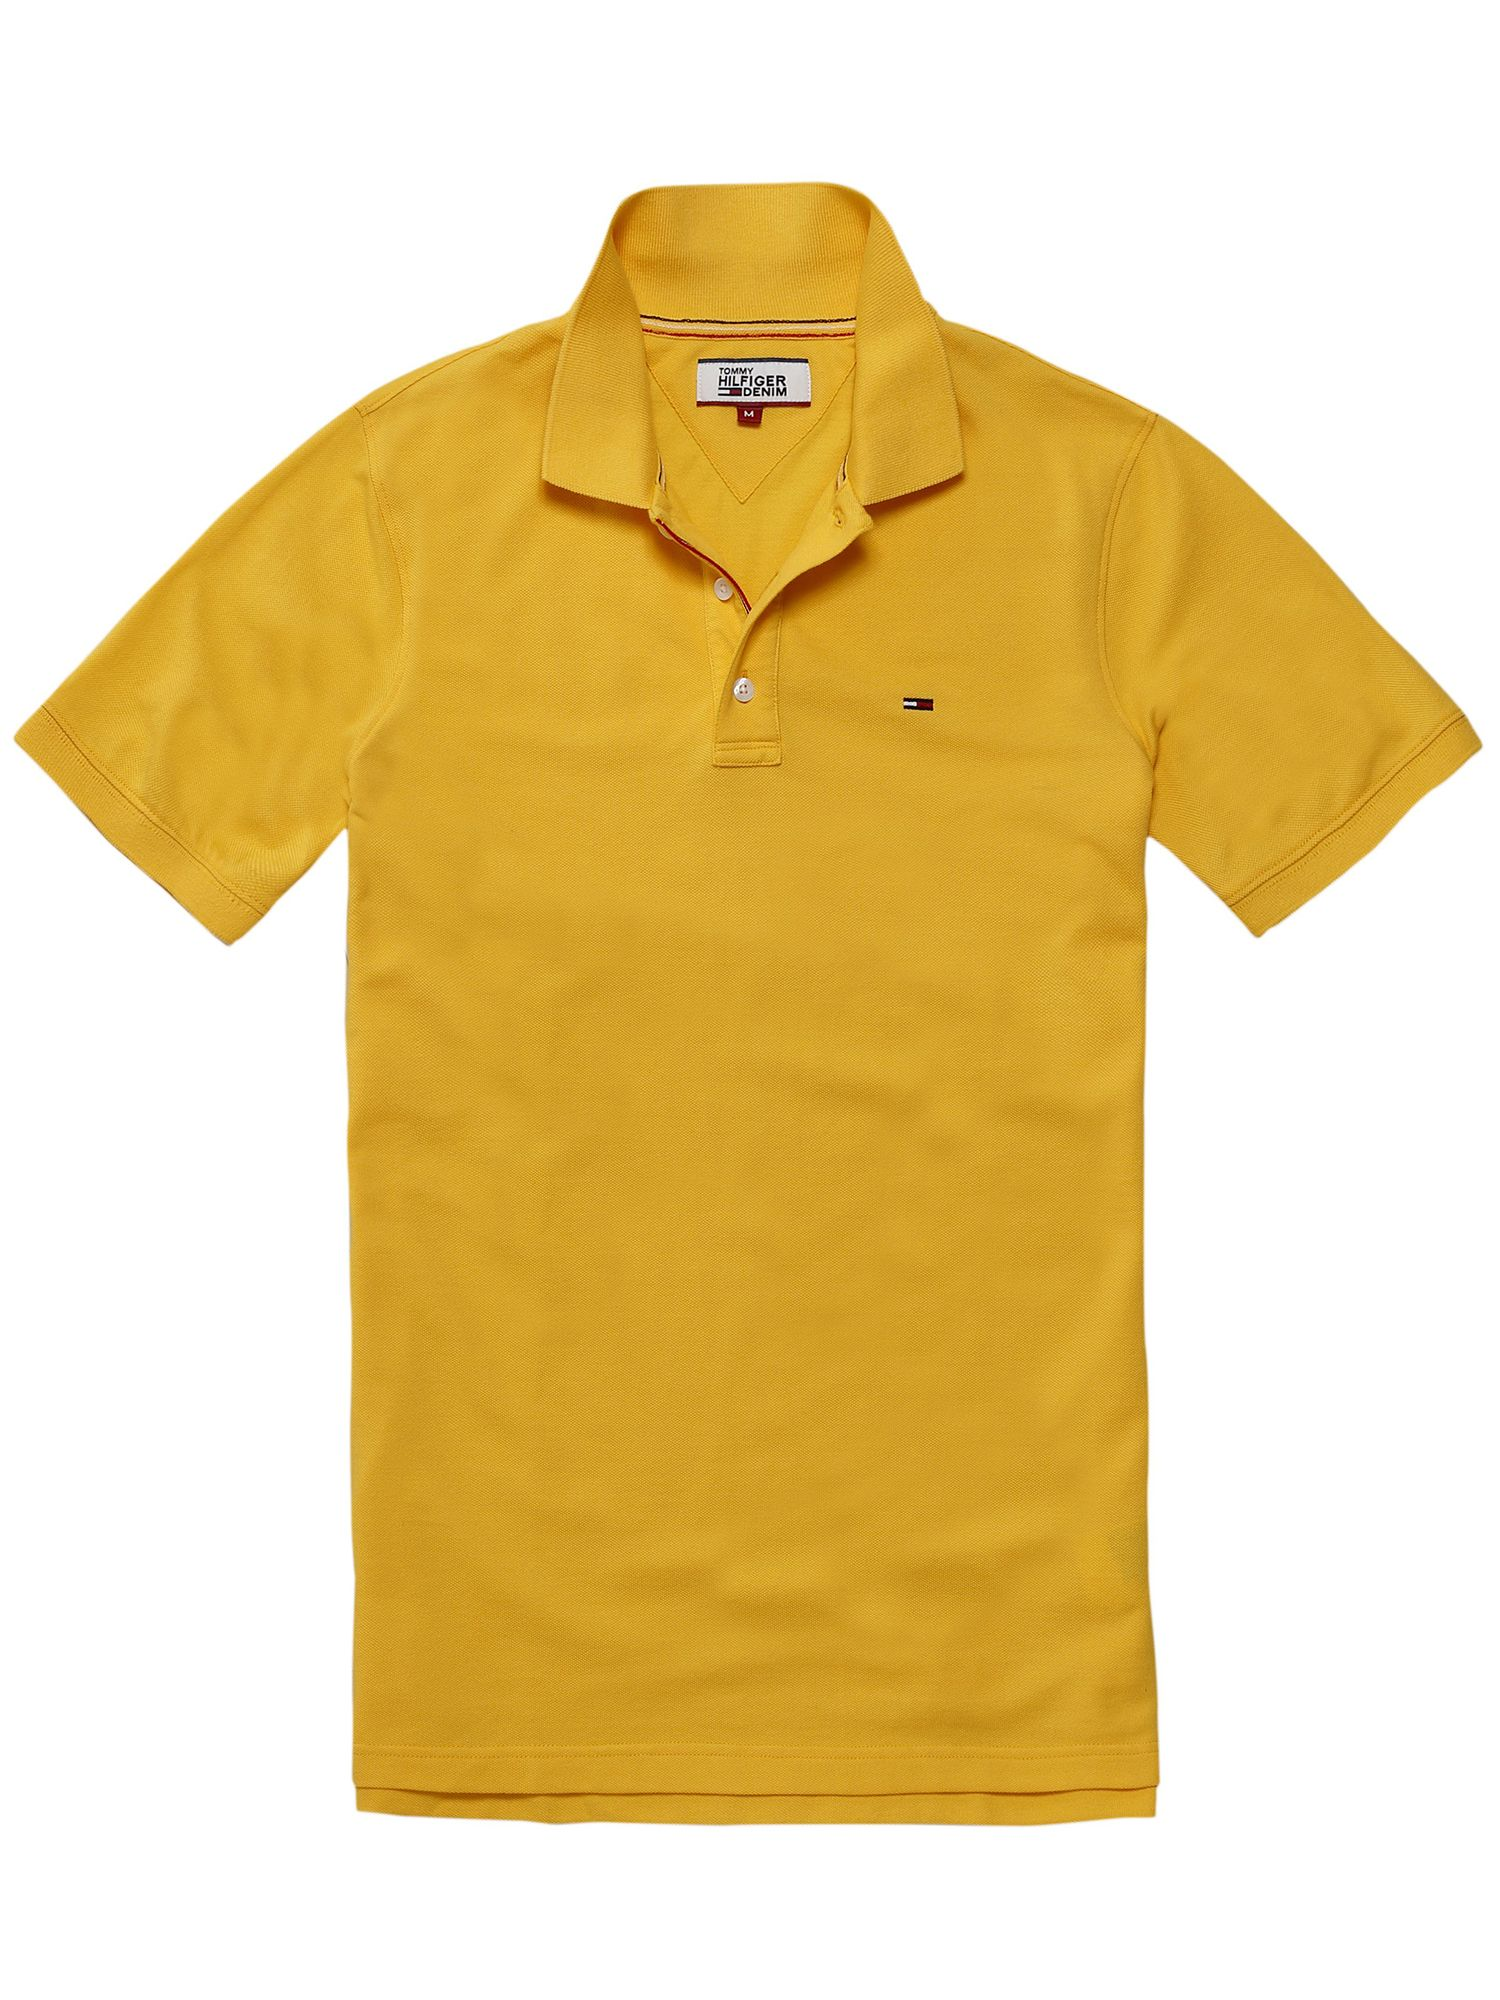 Men's Tommy Hilfiger THDM basic polo top, Yellow